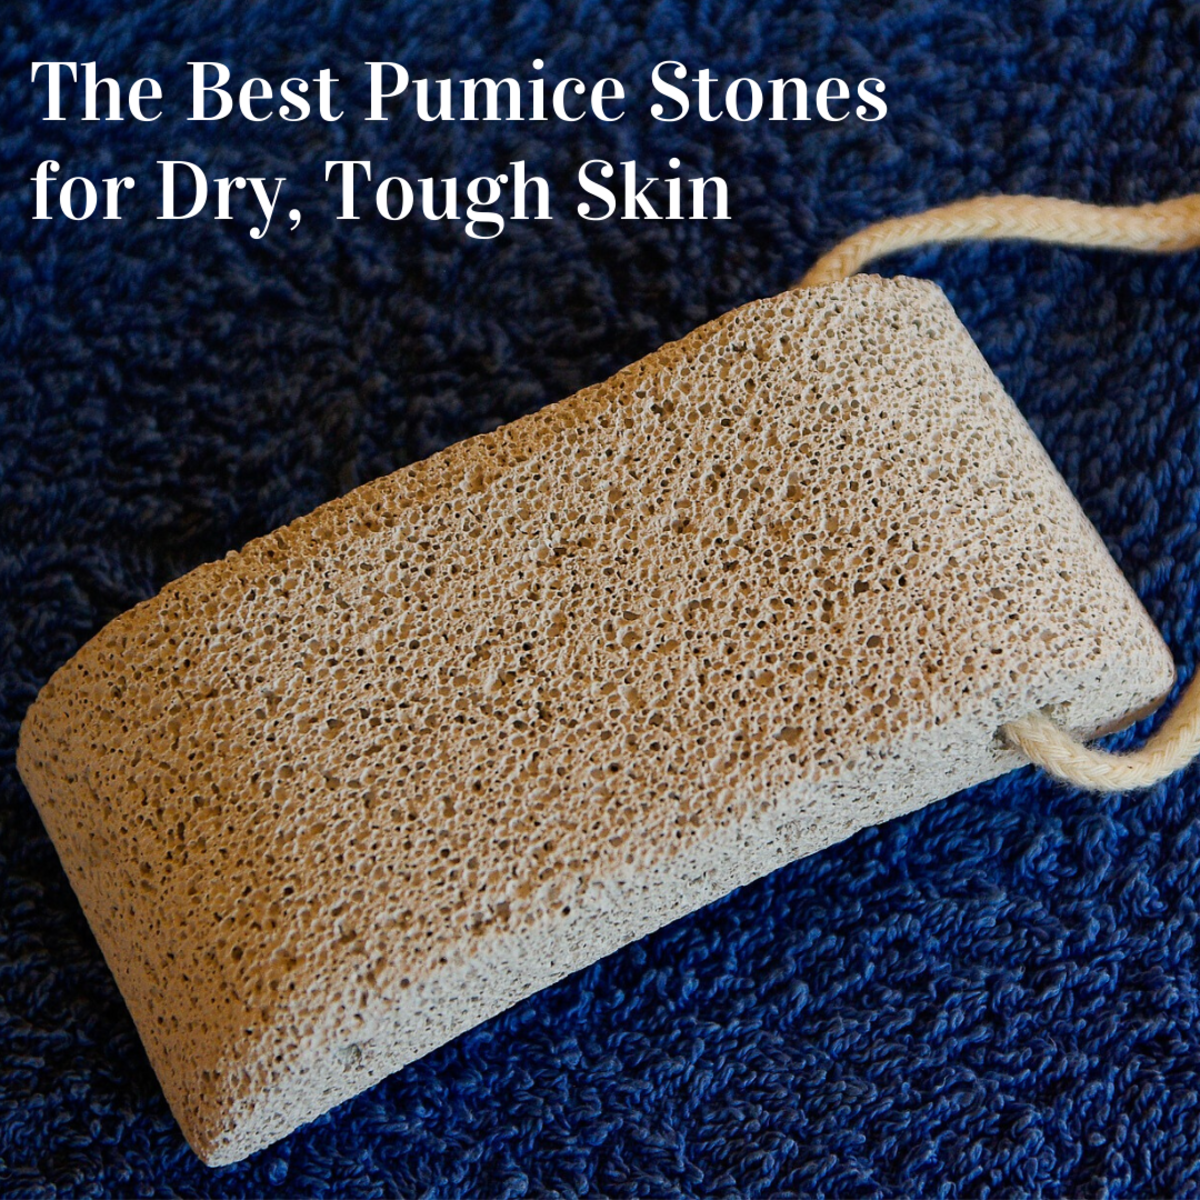 5 Best Pumice Stones for Removing Dry, Tough Skin